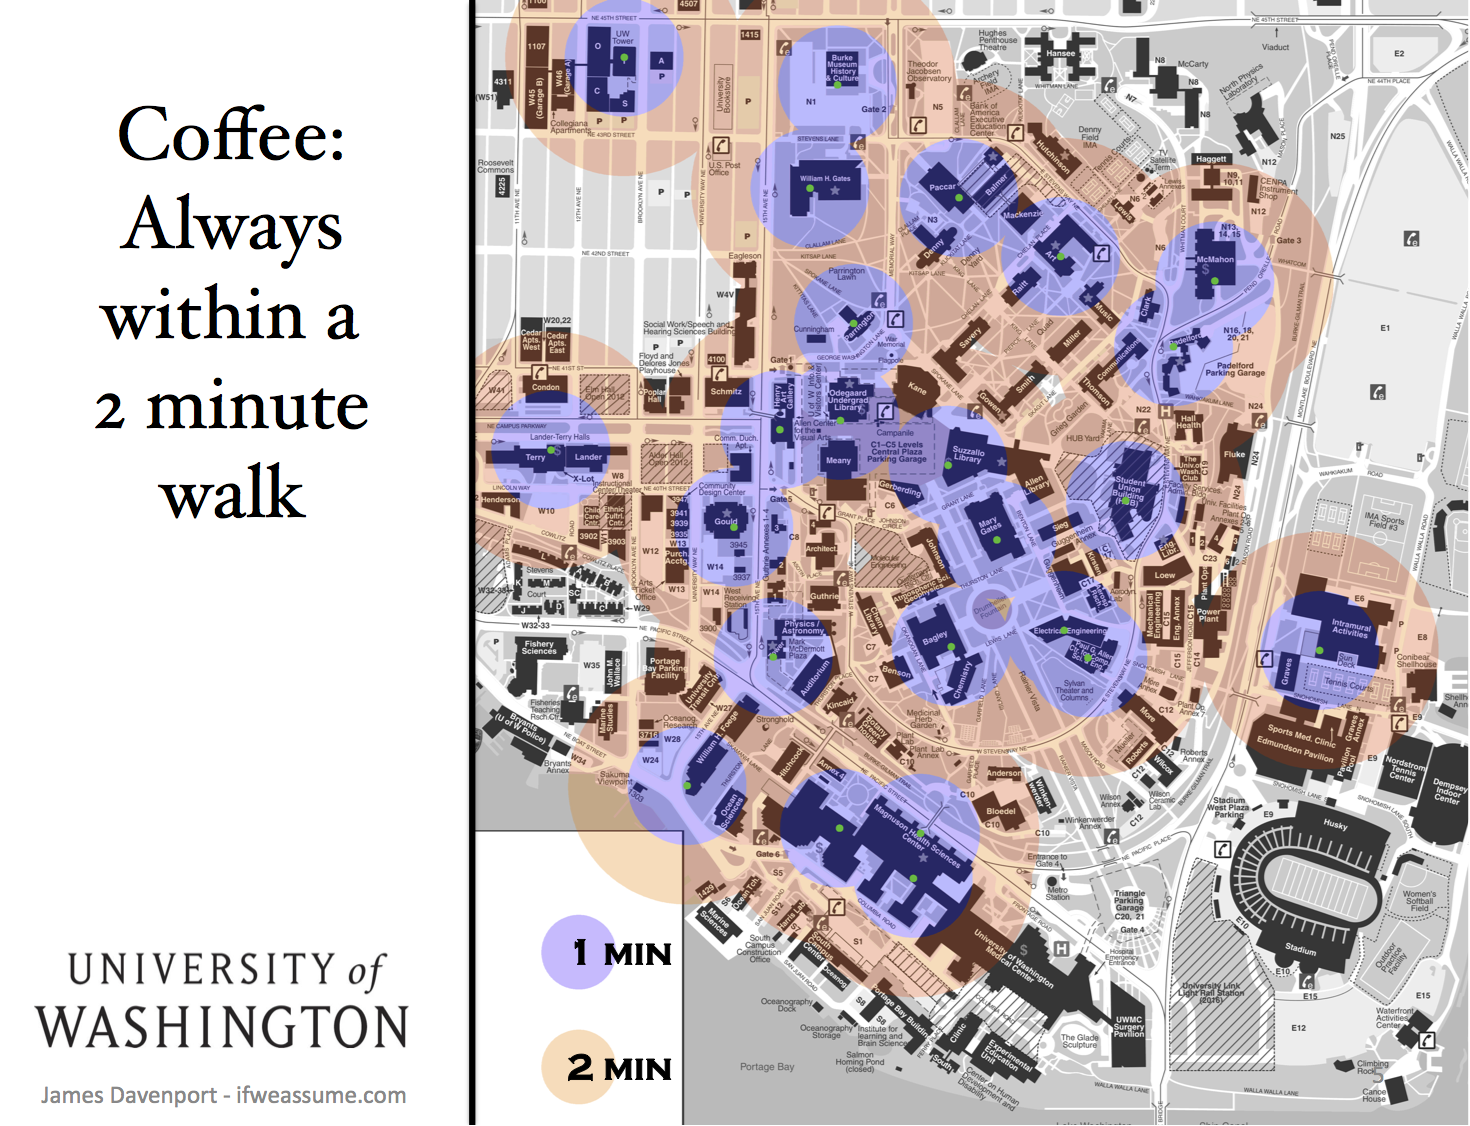 Coffee 2 Min From Everywhere Visual Ly Campus Map Infographic University Of Washington